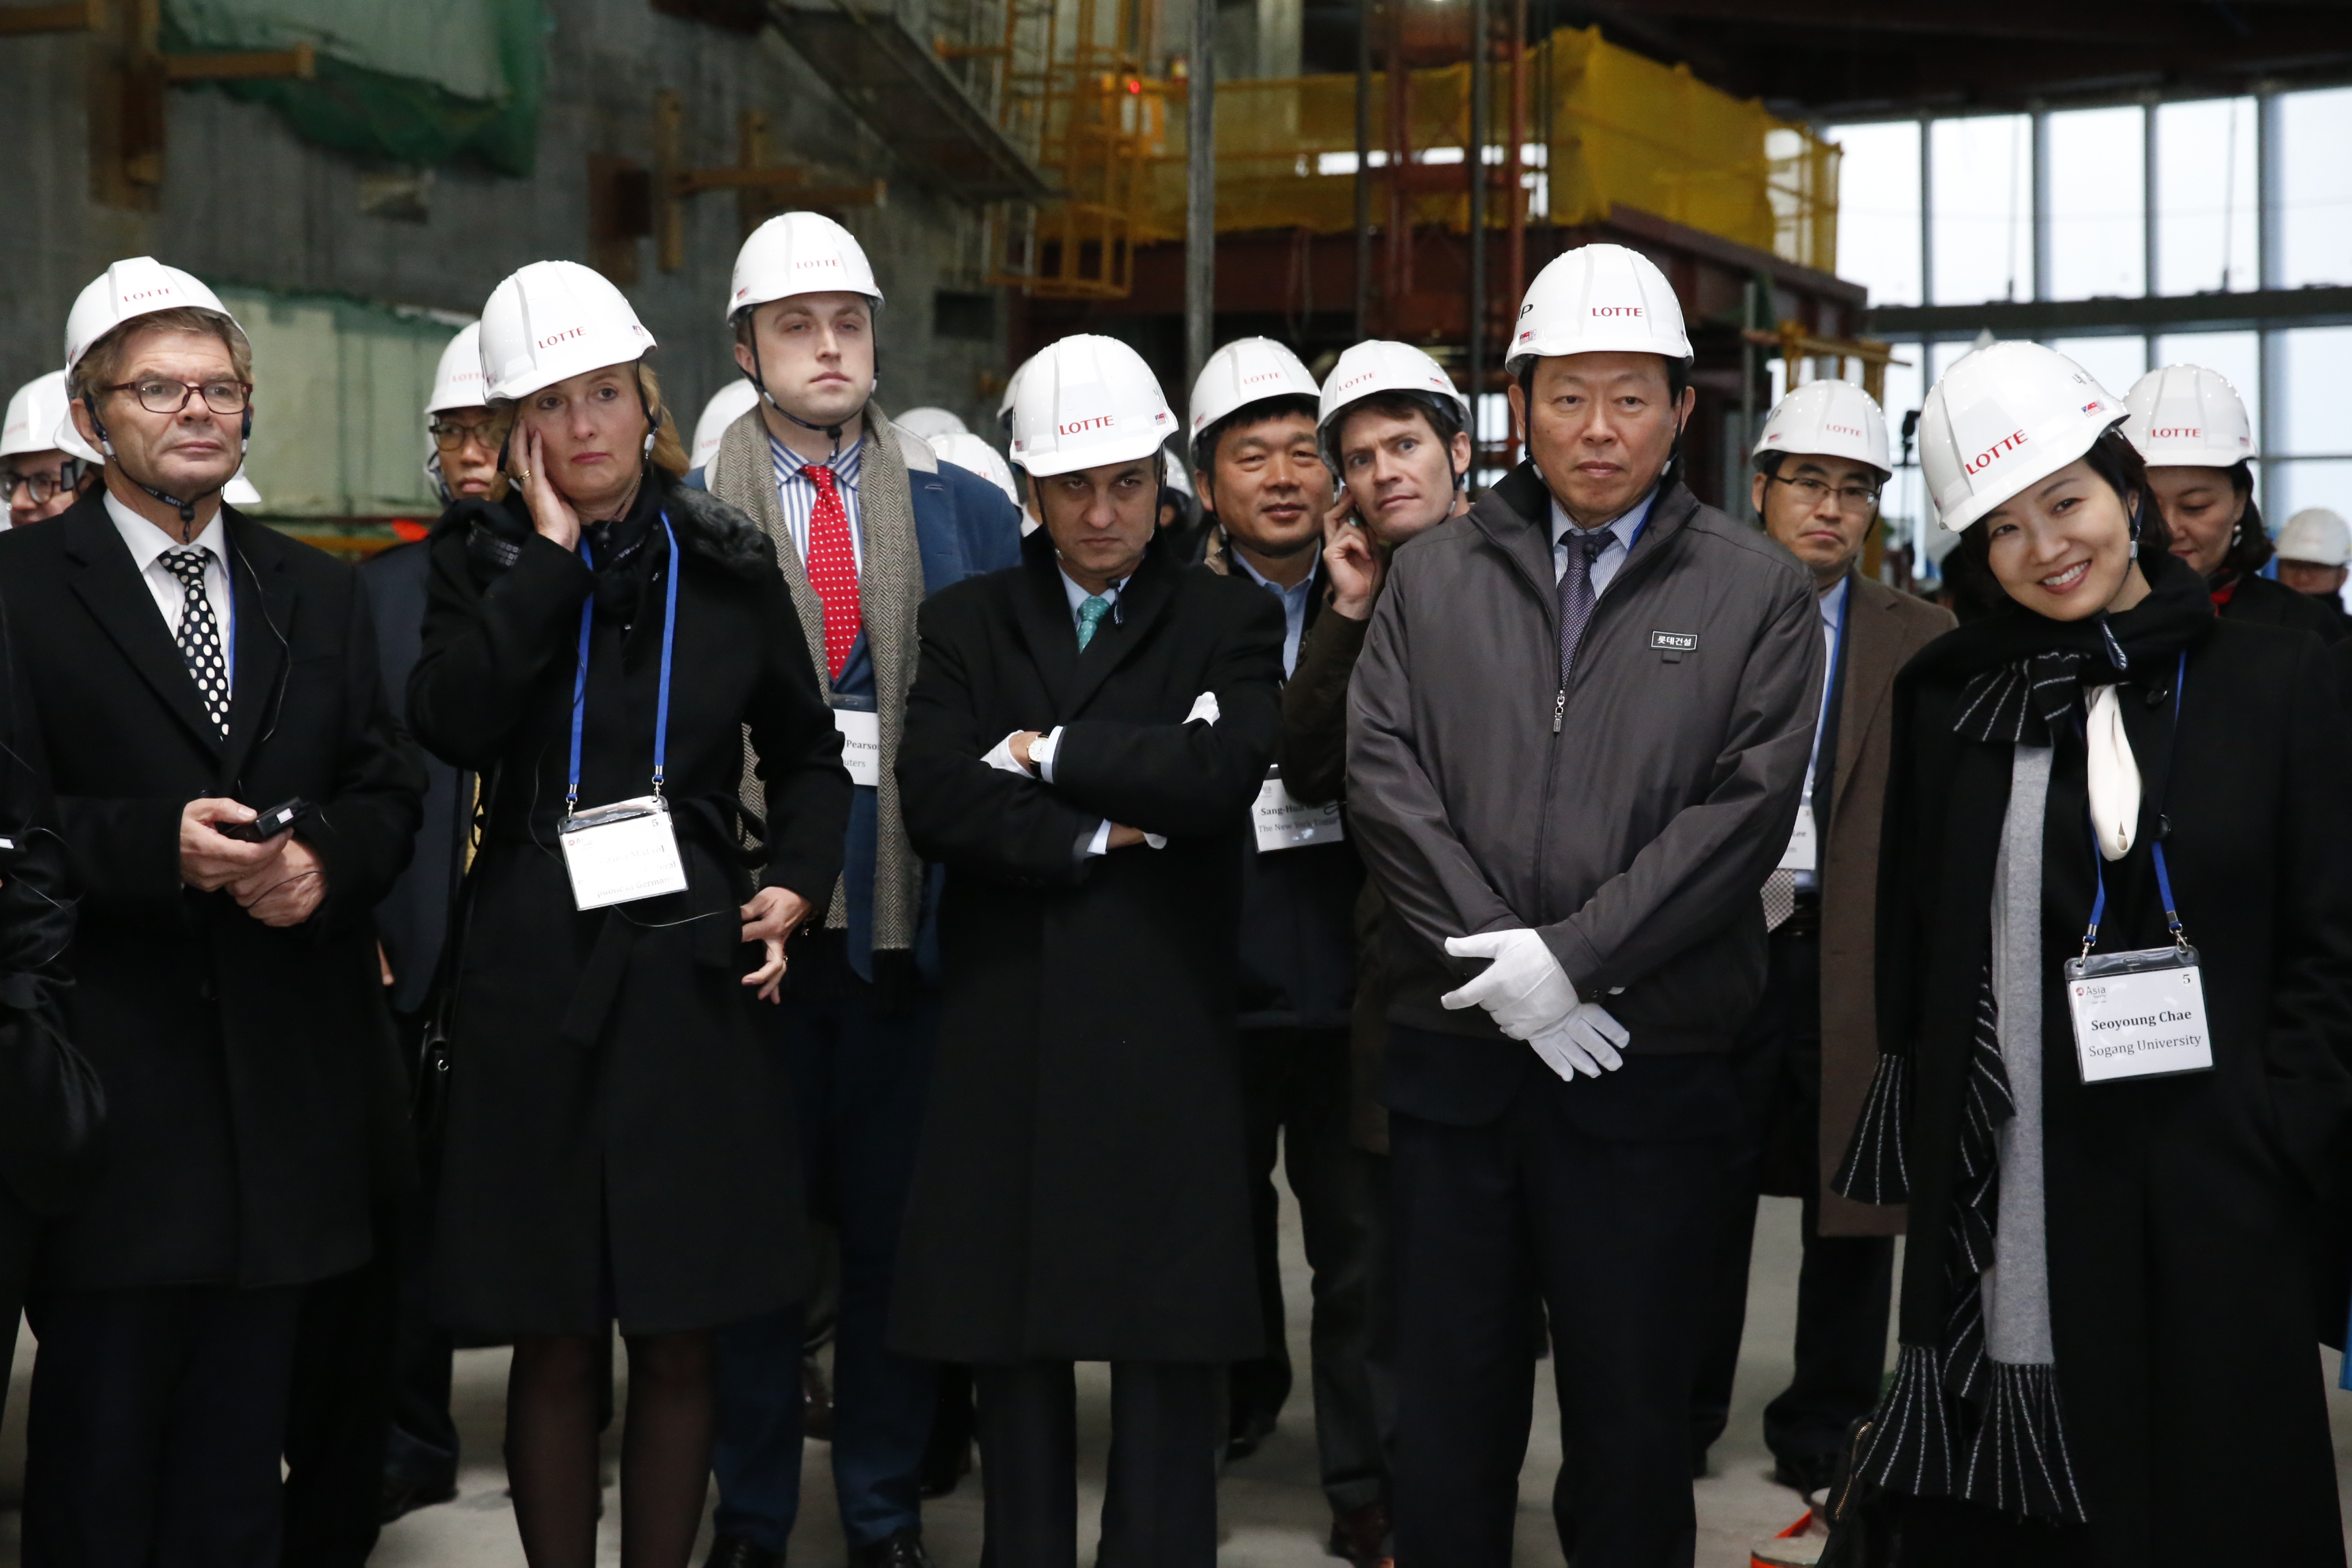 Lotte Group Chairman Shin Dong-bin (front row, 2nd from right) is giving a tour of the 2nd Lotte World building to 80 people, including members of the Asia Society Korea Center and diplomatic missions in Korea.